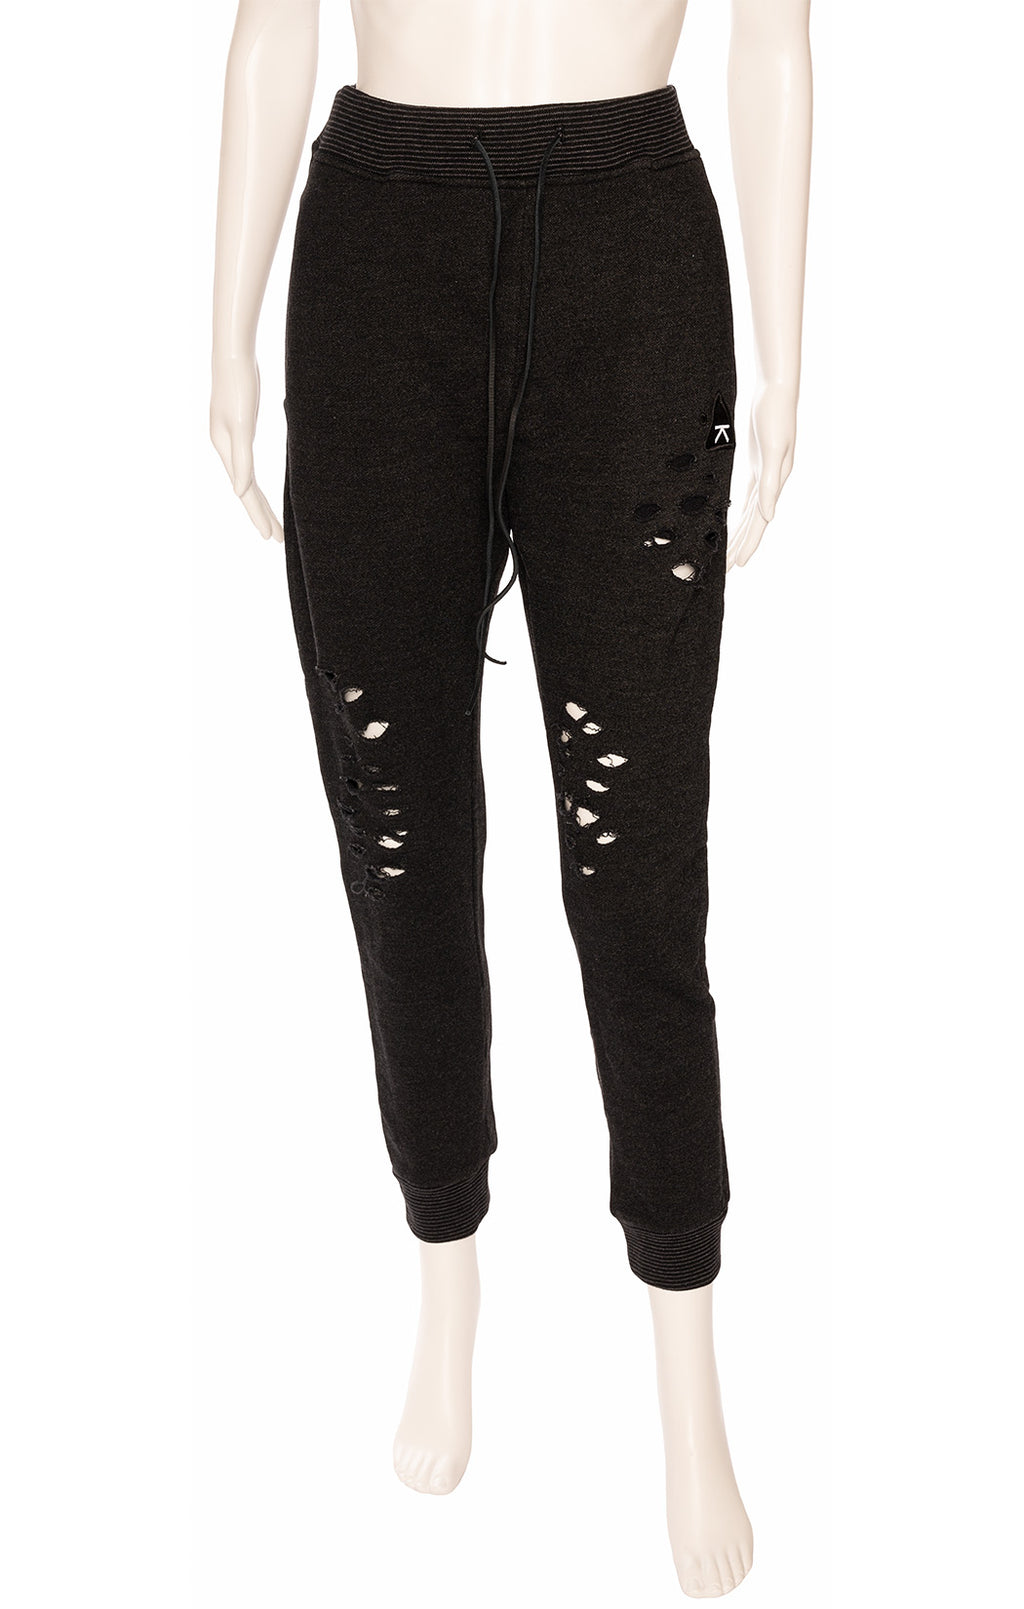 Black with holes drawstring sweatpants